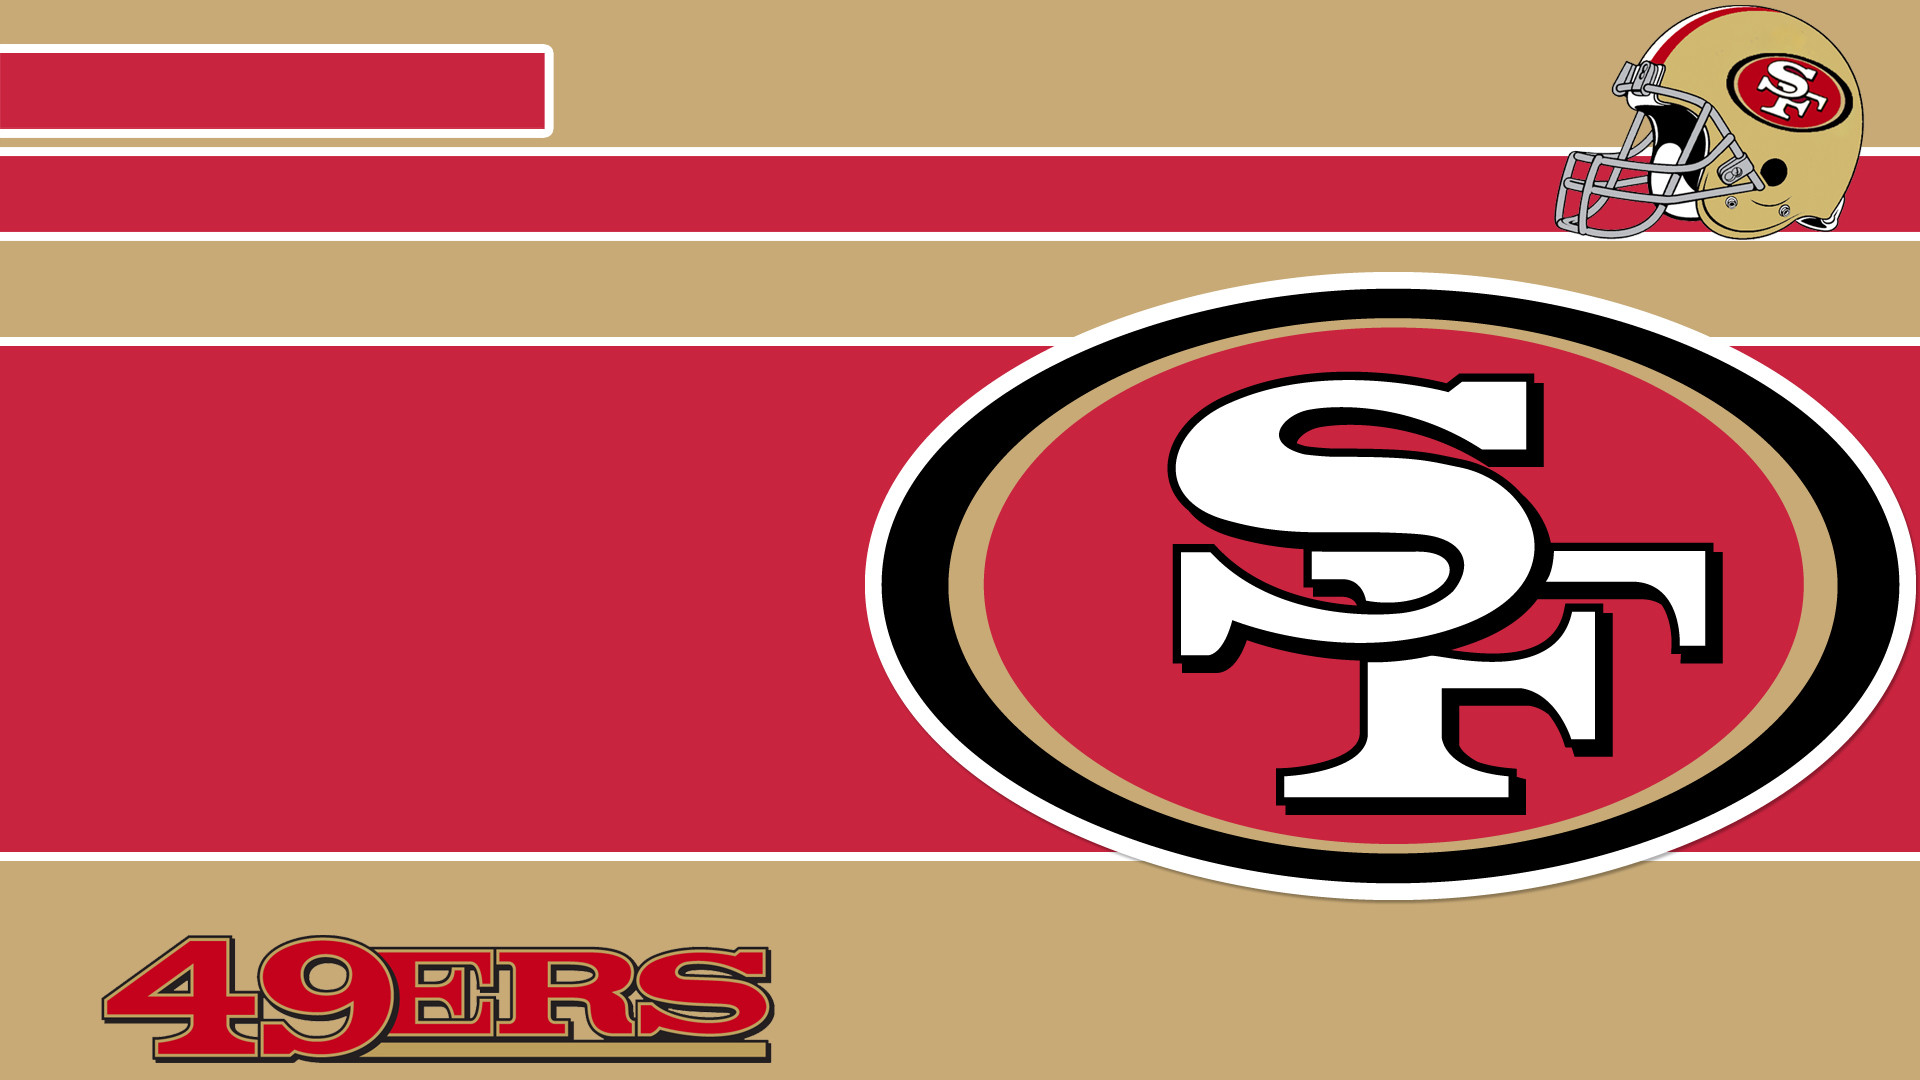 49Ers Wallpapers Your Phone ·①